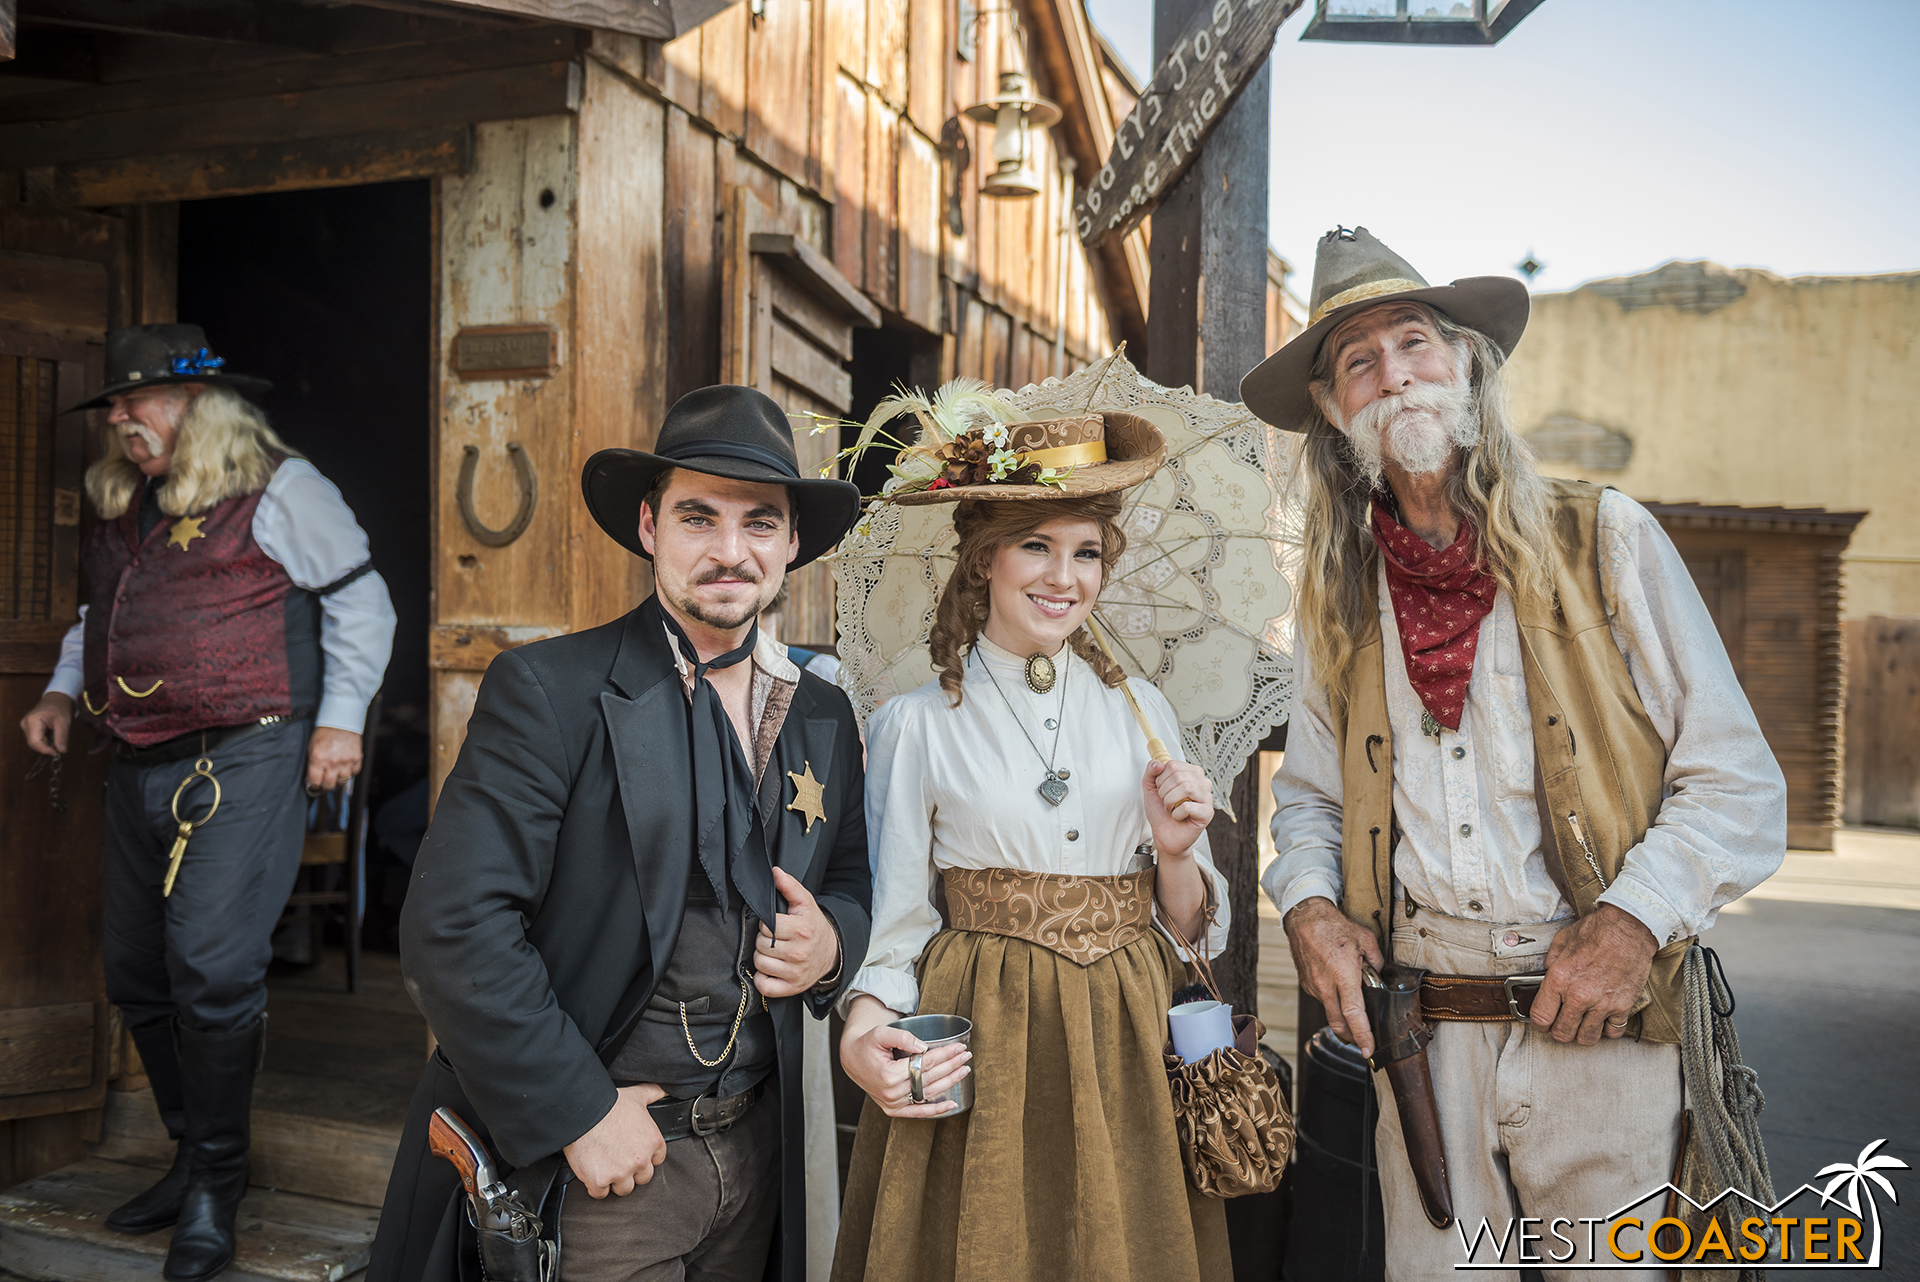 With the Mayfield Gang as a whole causing less trouble this year than usual, Deputy Luke, Goldie's Place manager, Violet Lee, and Ike Mayfield are able to pose together for a photo.